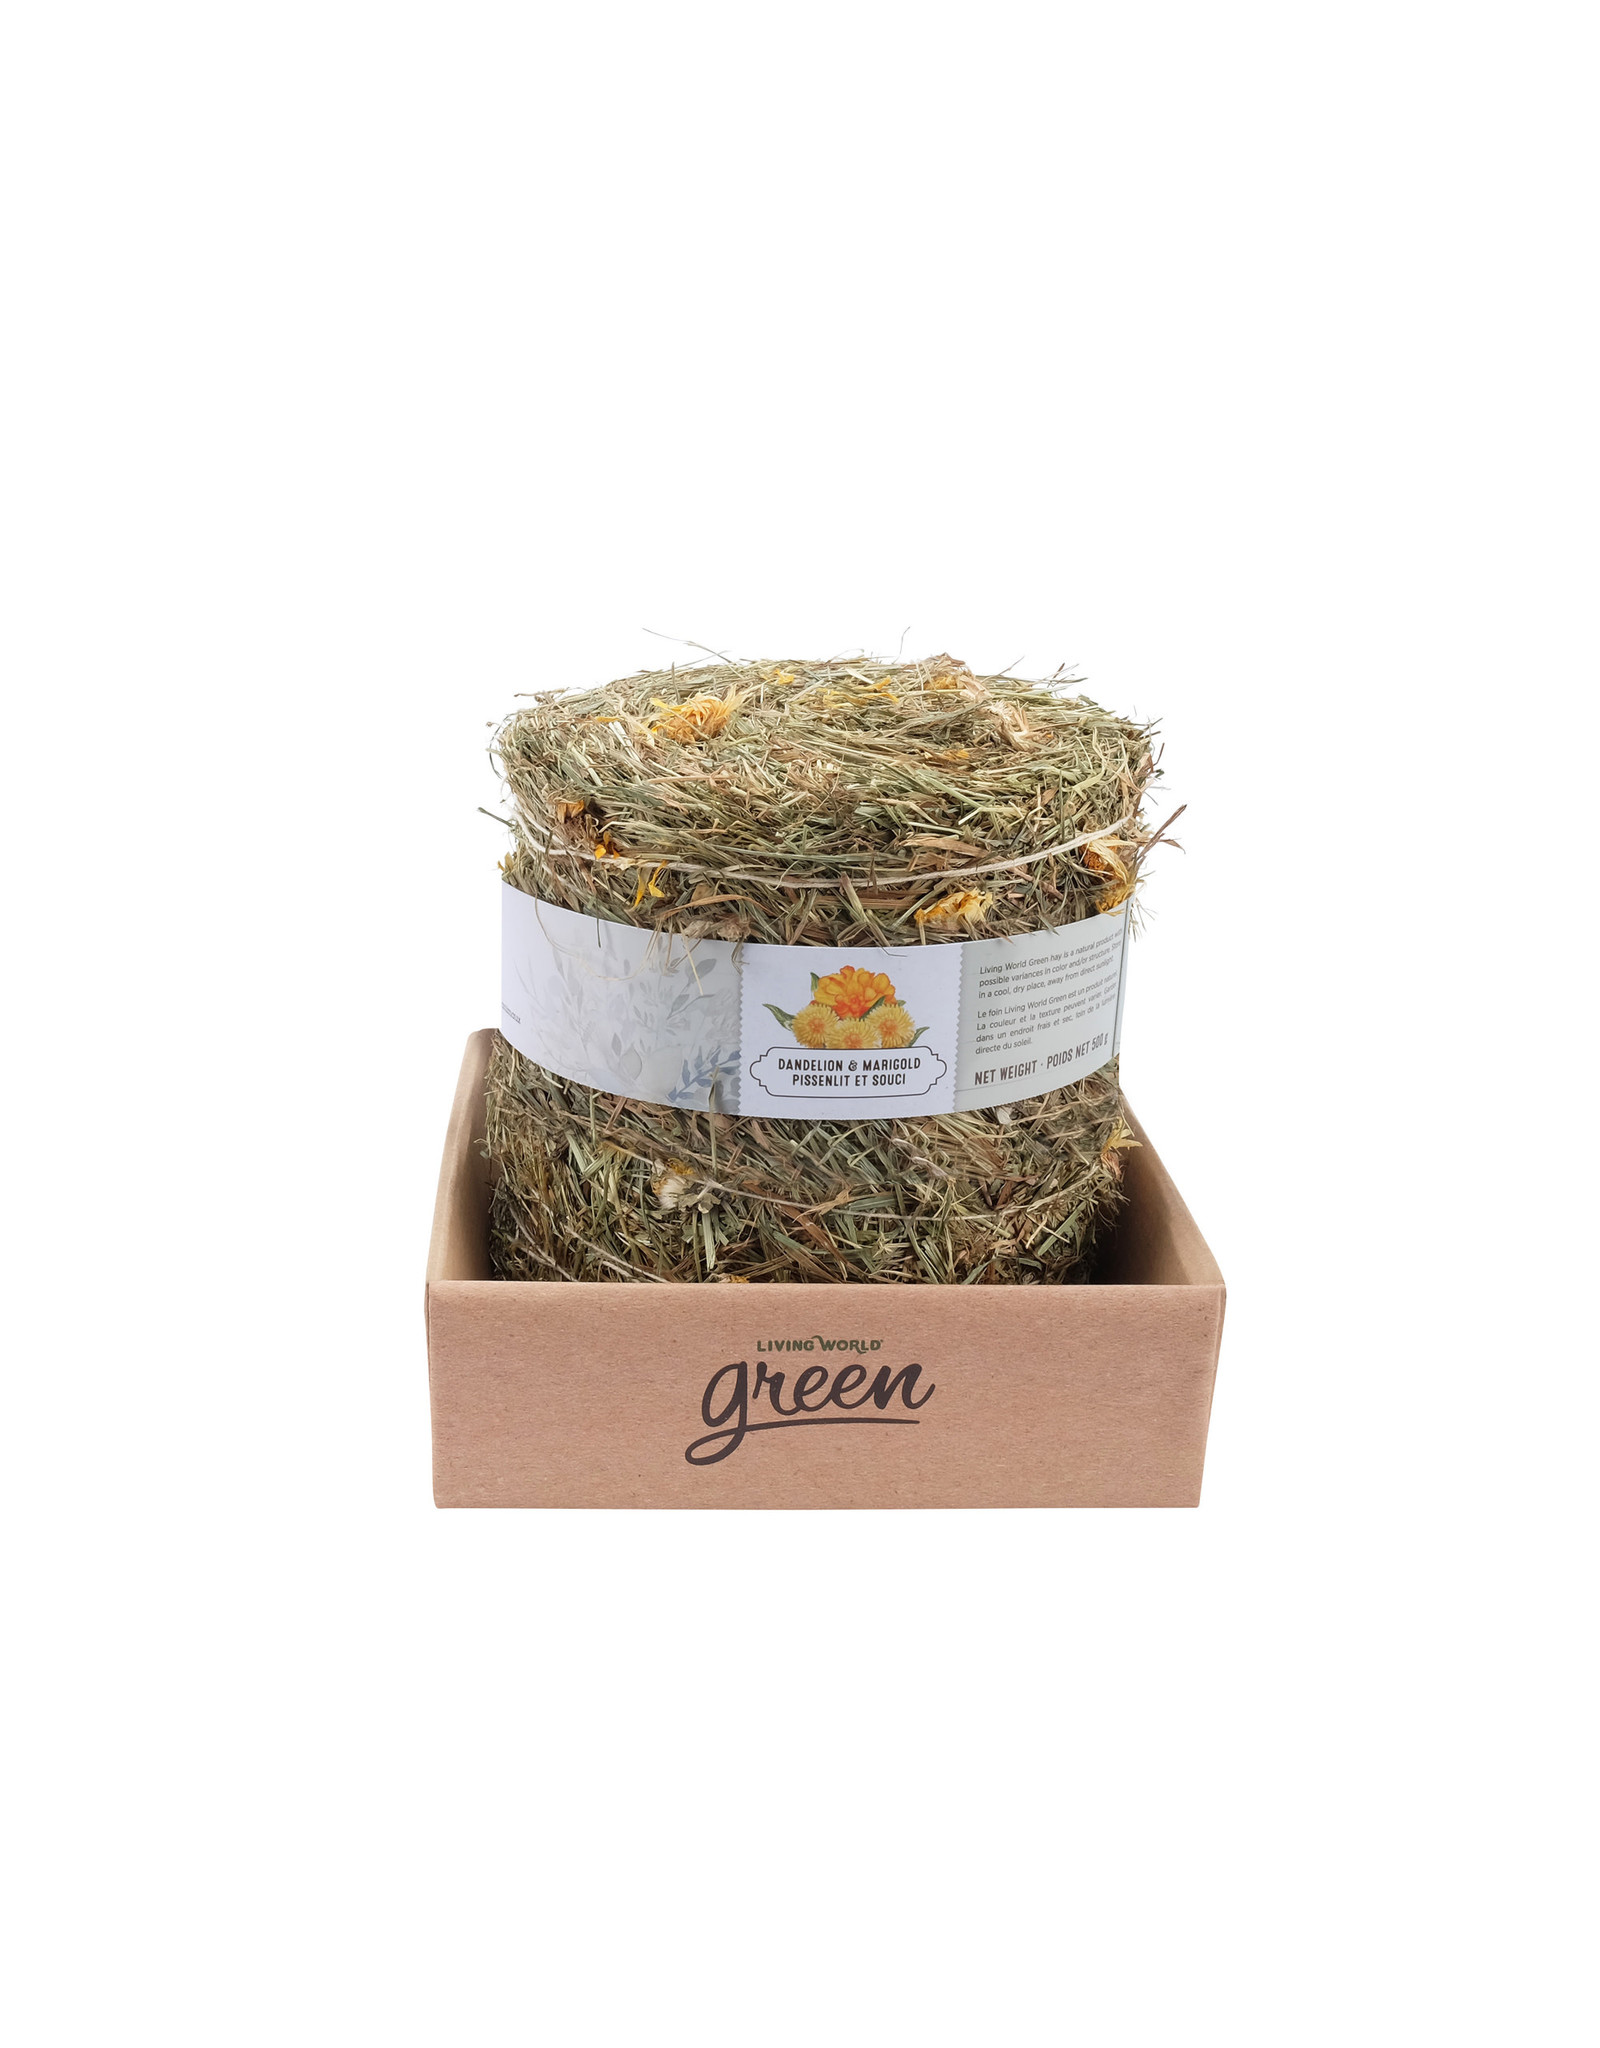 Living World Green Botanicals Meadow Hay Bale - Dandelion & Marigold 500g